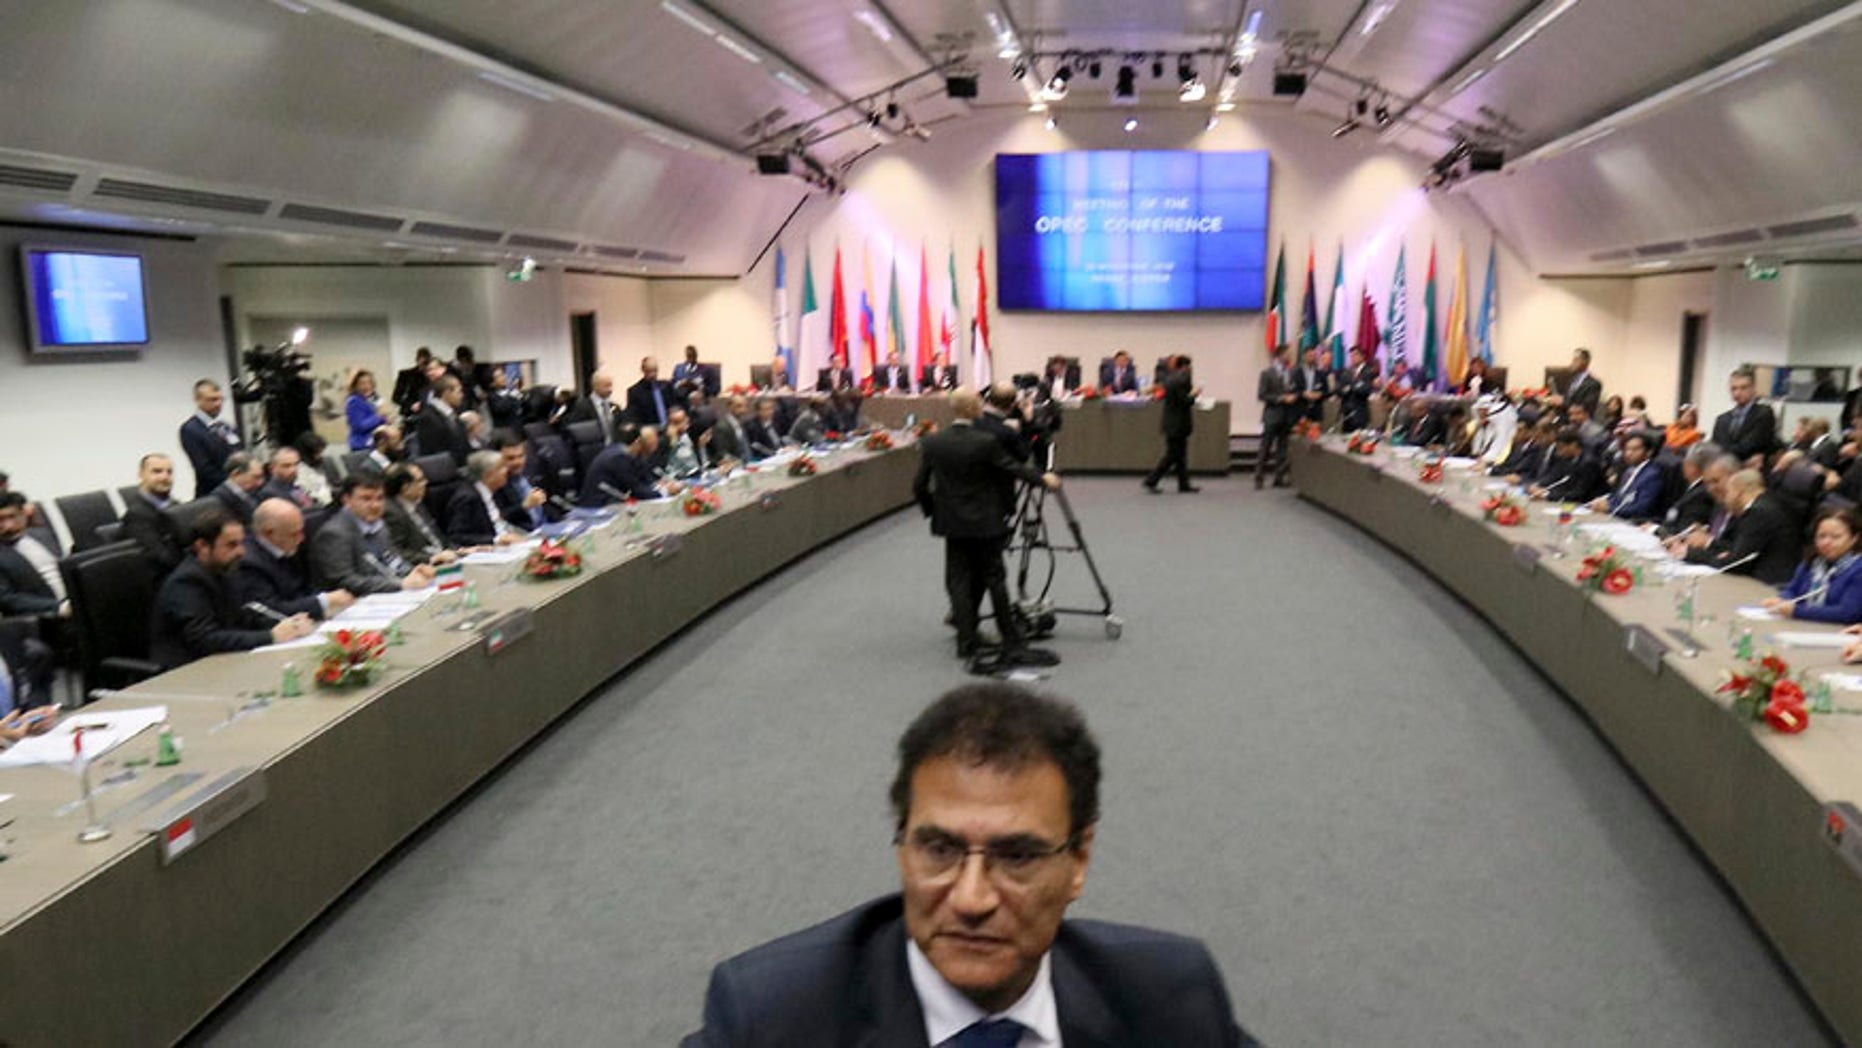 General view of a meeting of oil ministers of the Organization of the Petroleum Exporting countries, OPEC, at their headquarters in Vienna, Austria, Wednesday, Nov. 30, 2016. (AP Photo/Ronald Zak)